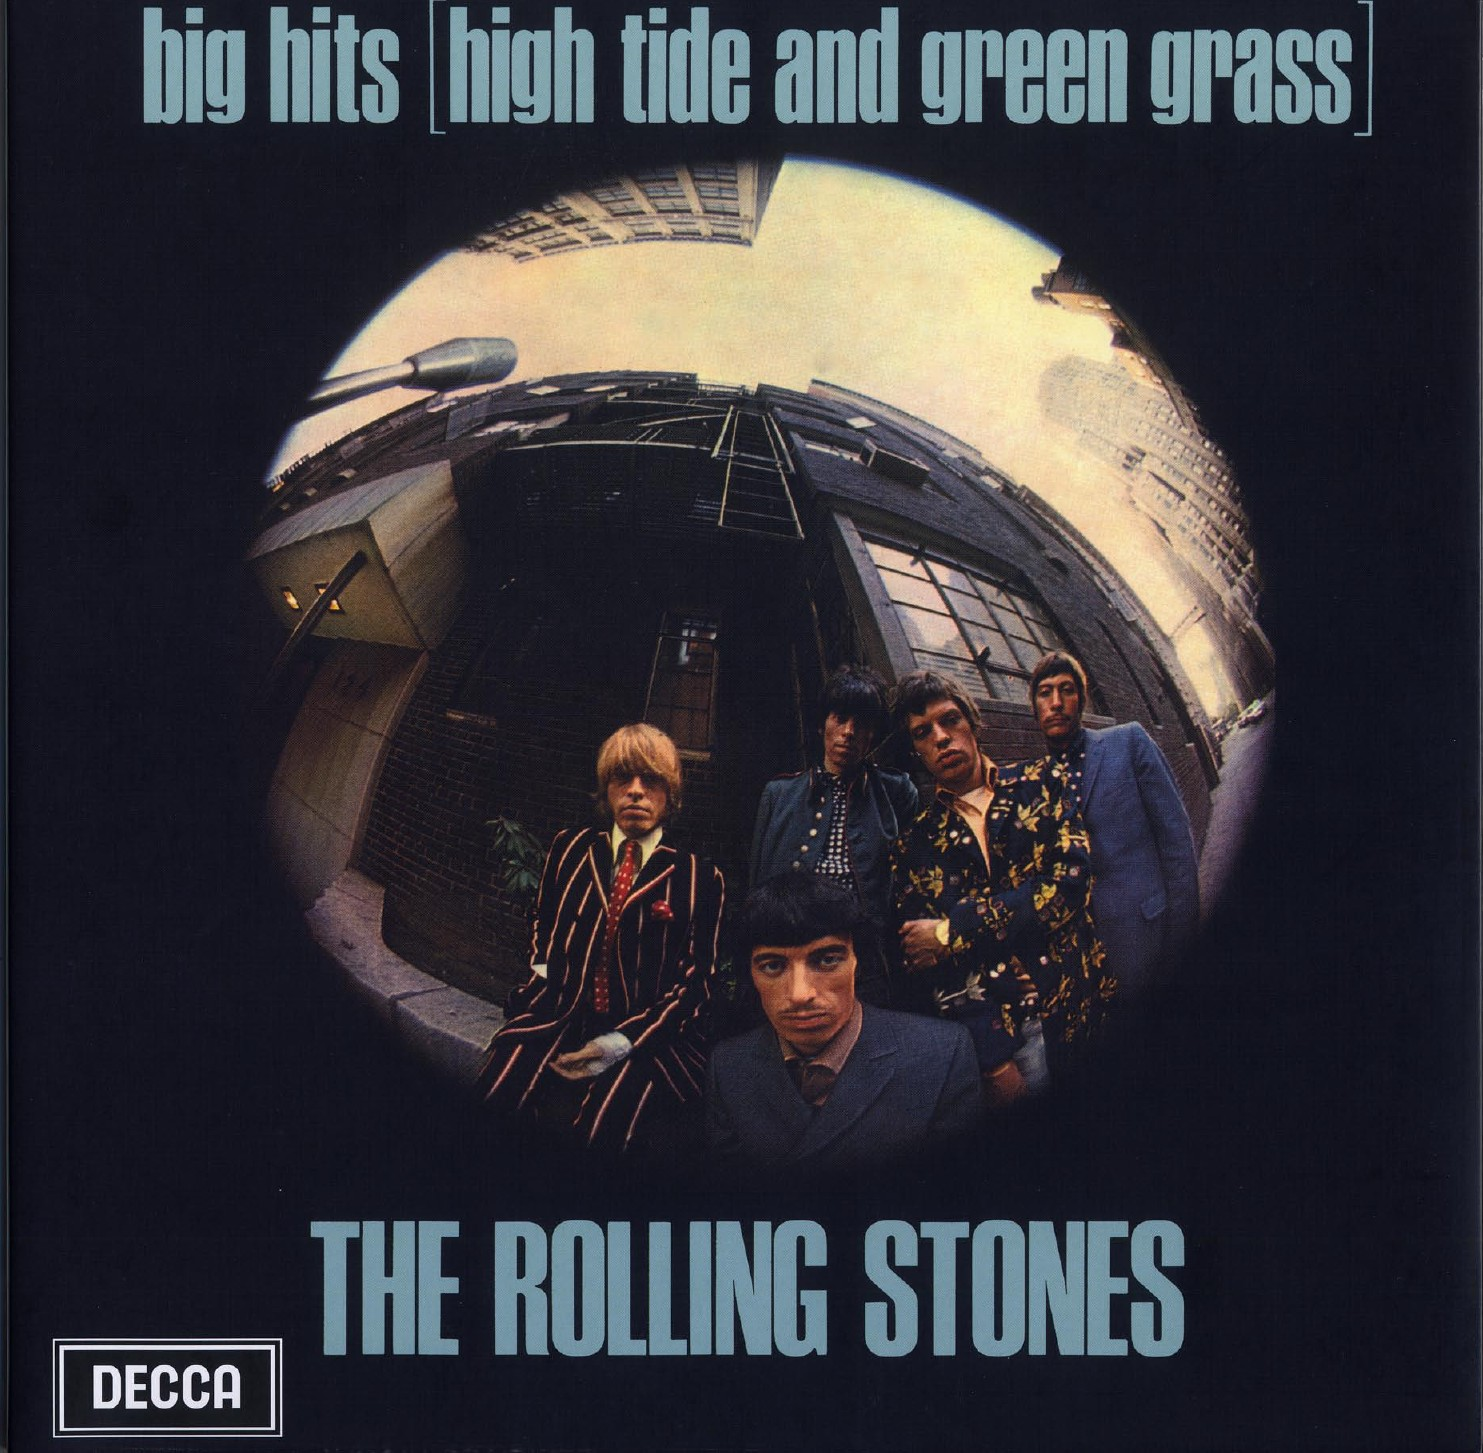 Music Archive The Rolling Stones Big Hits High Tide